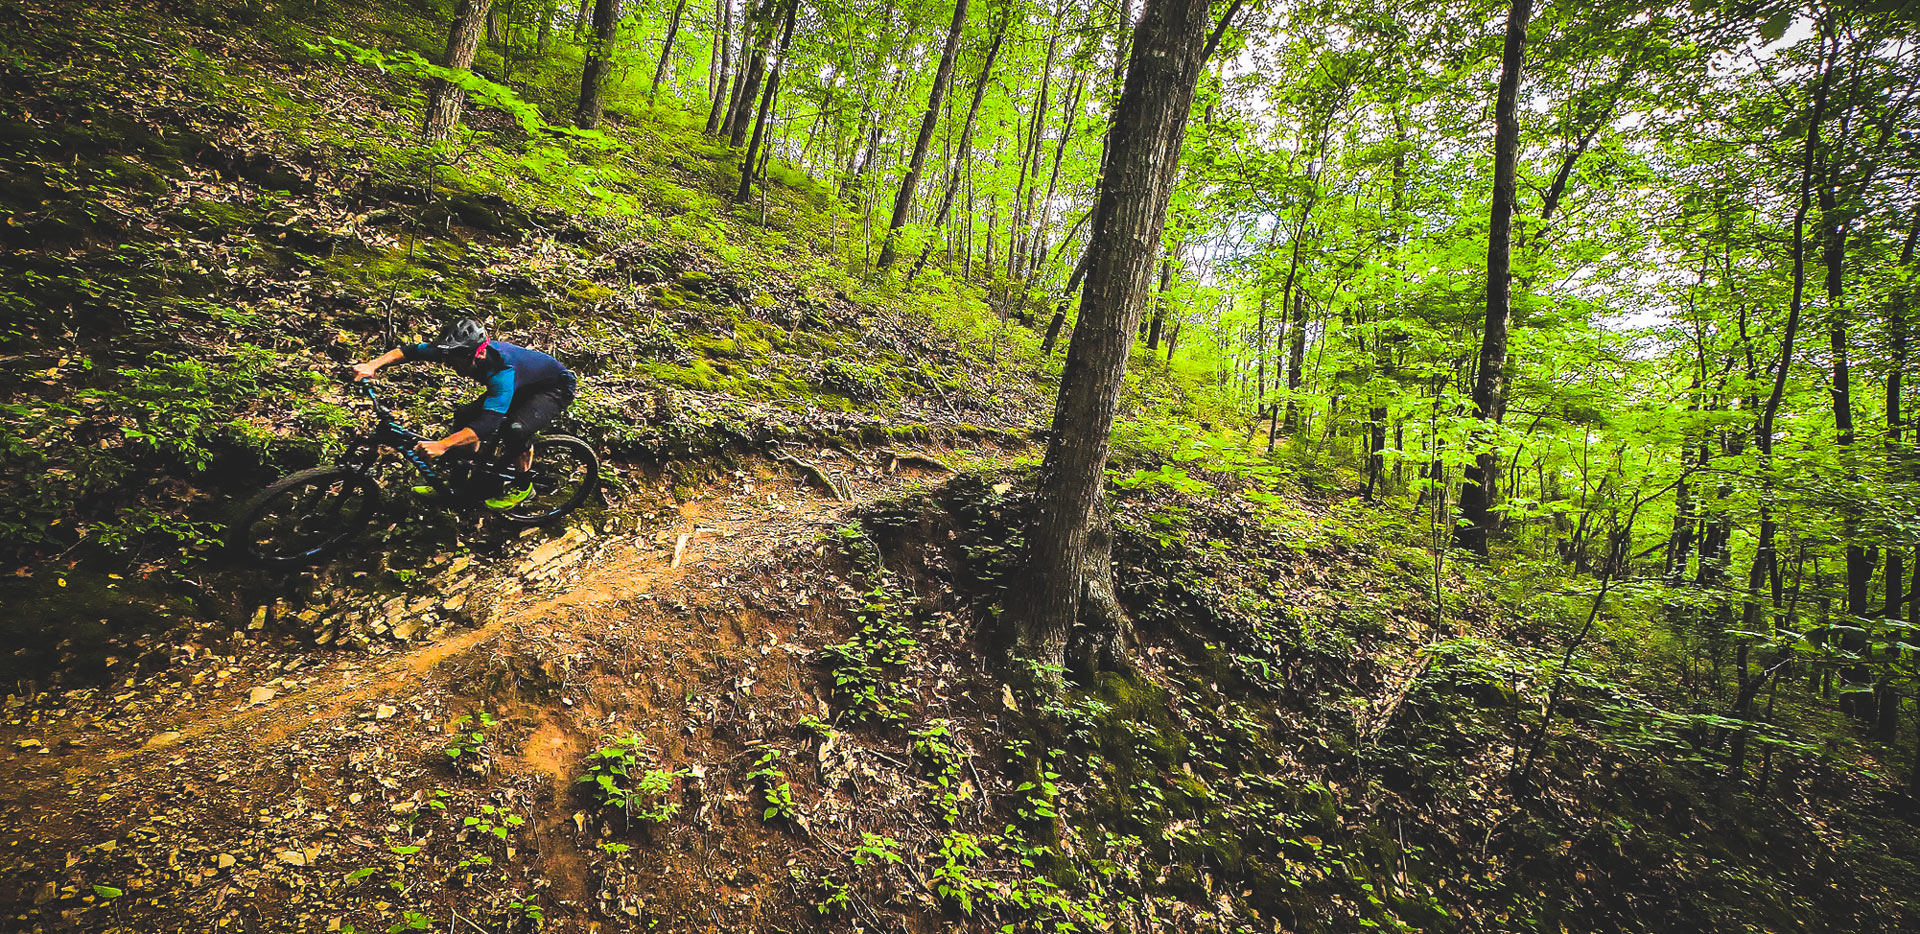 Maxxis Intersections: Roanoke, Virginia